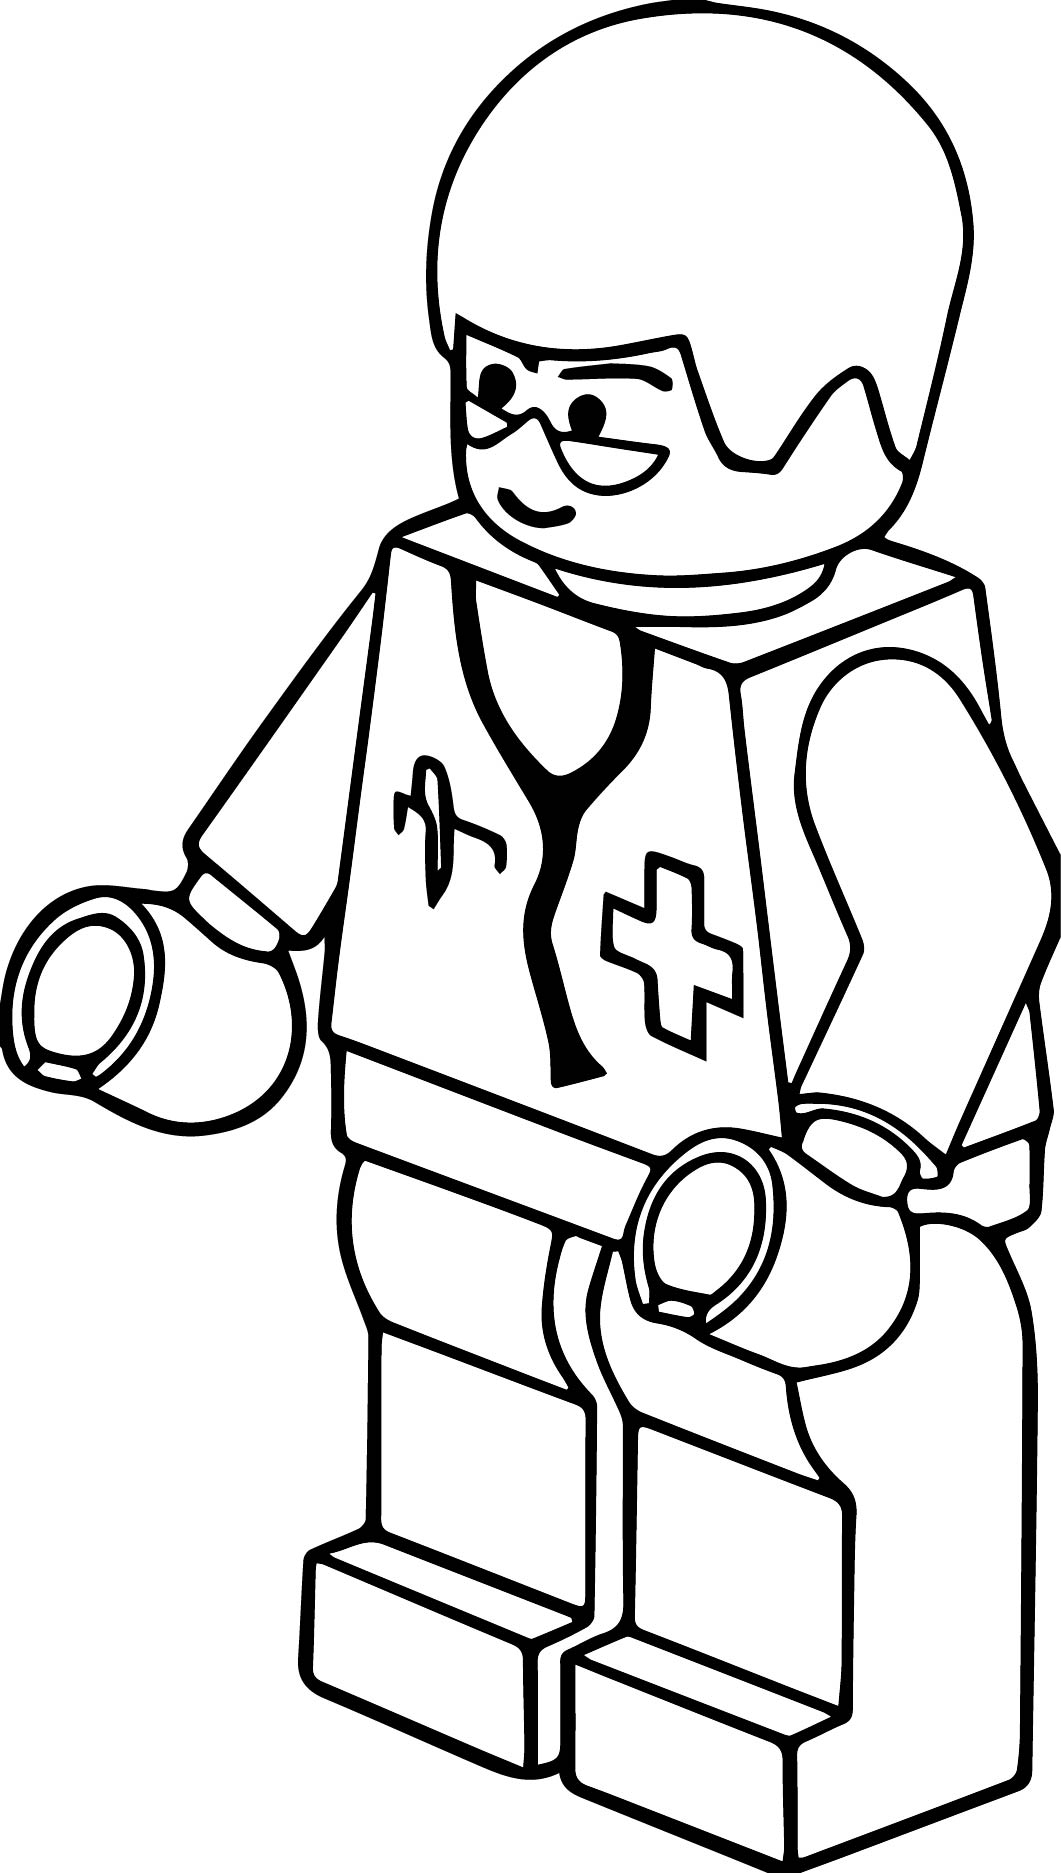 Lego Clipart Black And White.